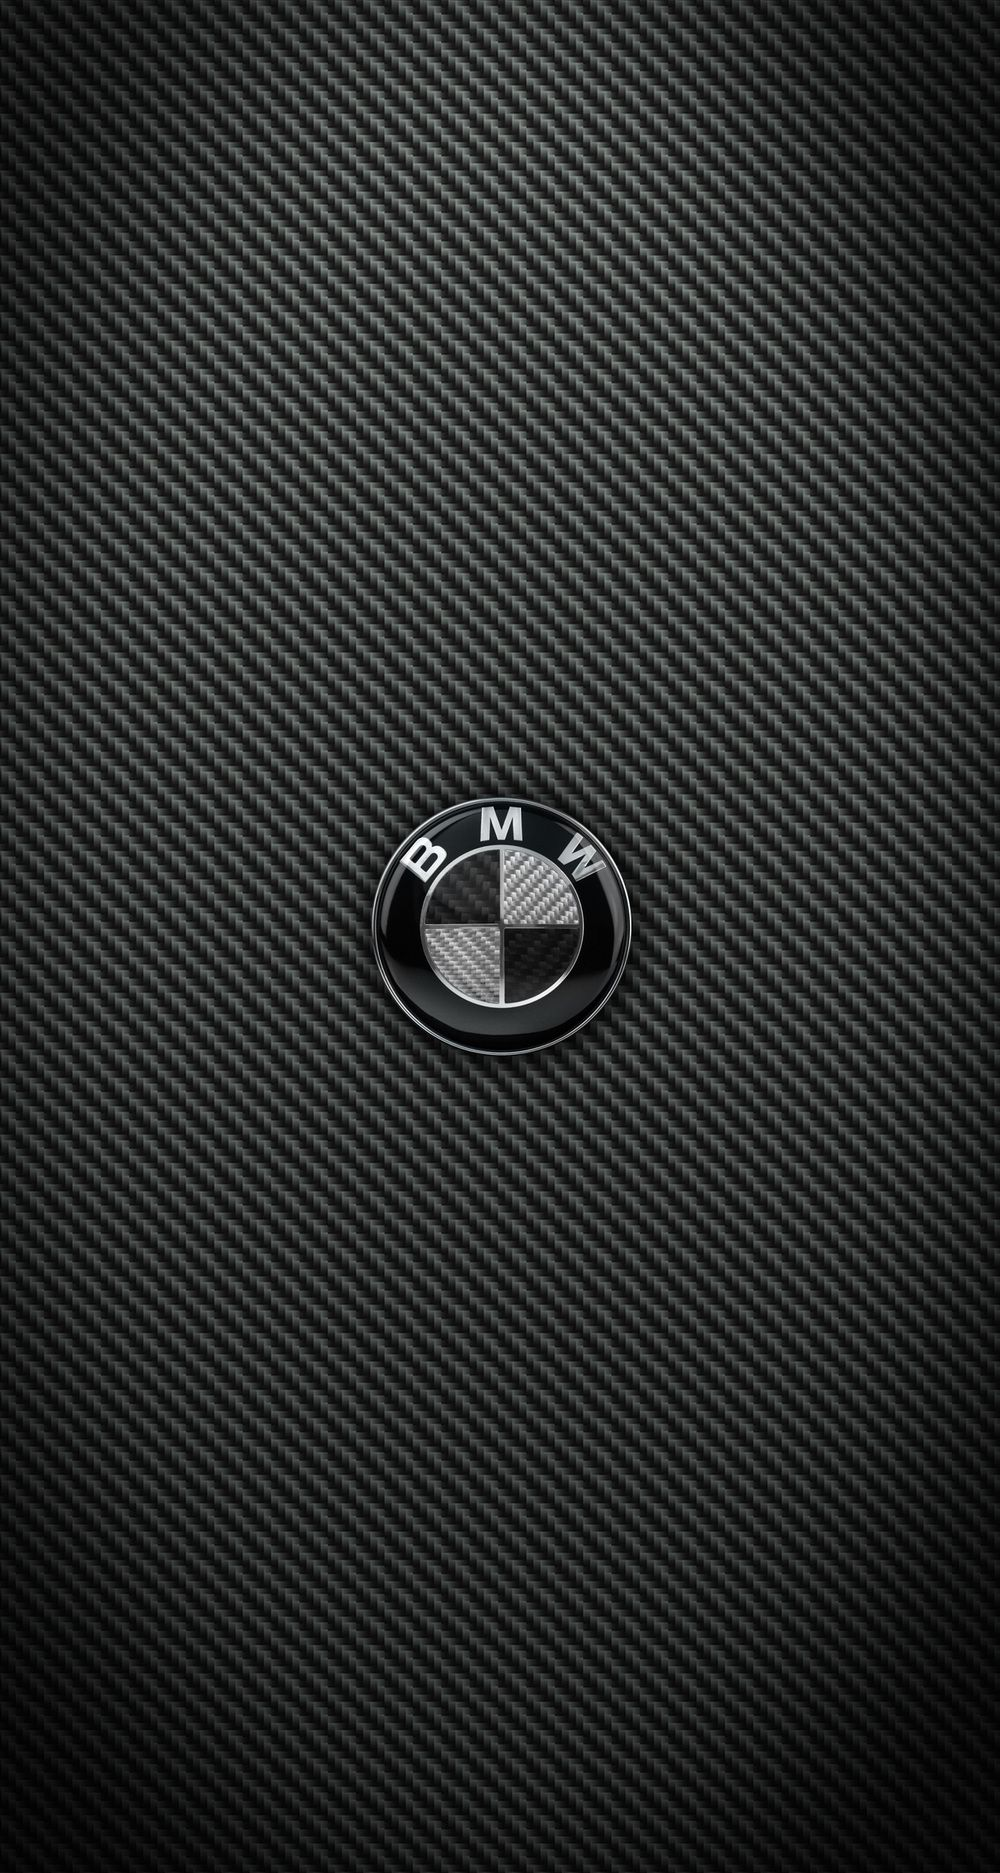 Carbon Fiber BMW And M Power IPhone Wallpapers For 6 Plus